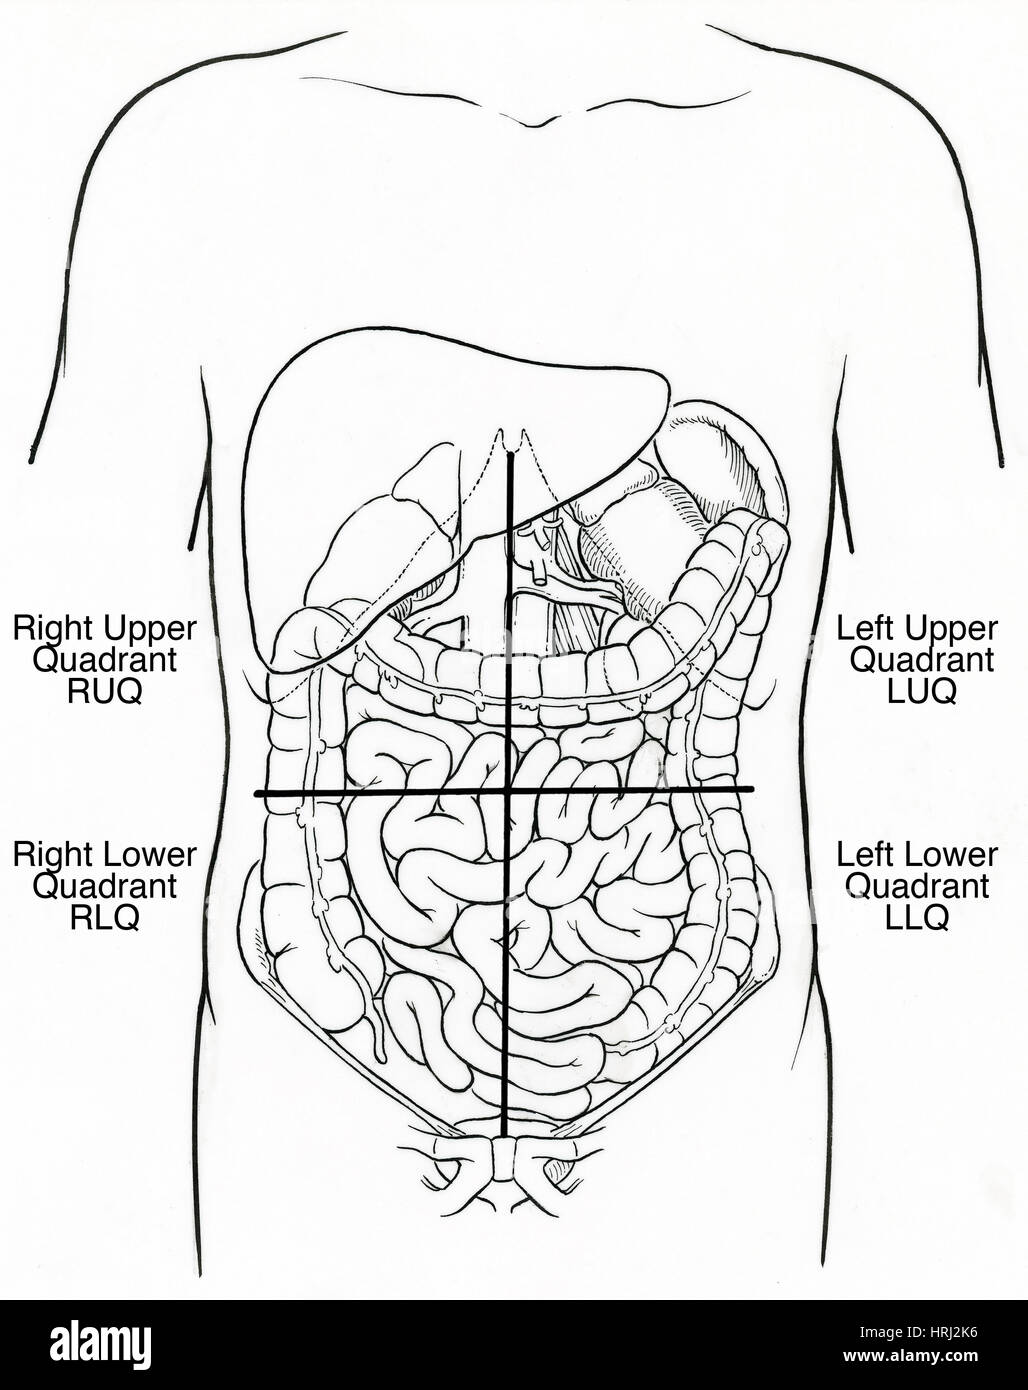 Diagram Quadrants Of The Abdomen